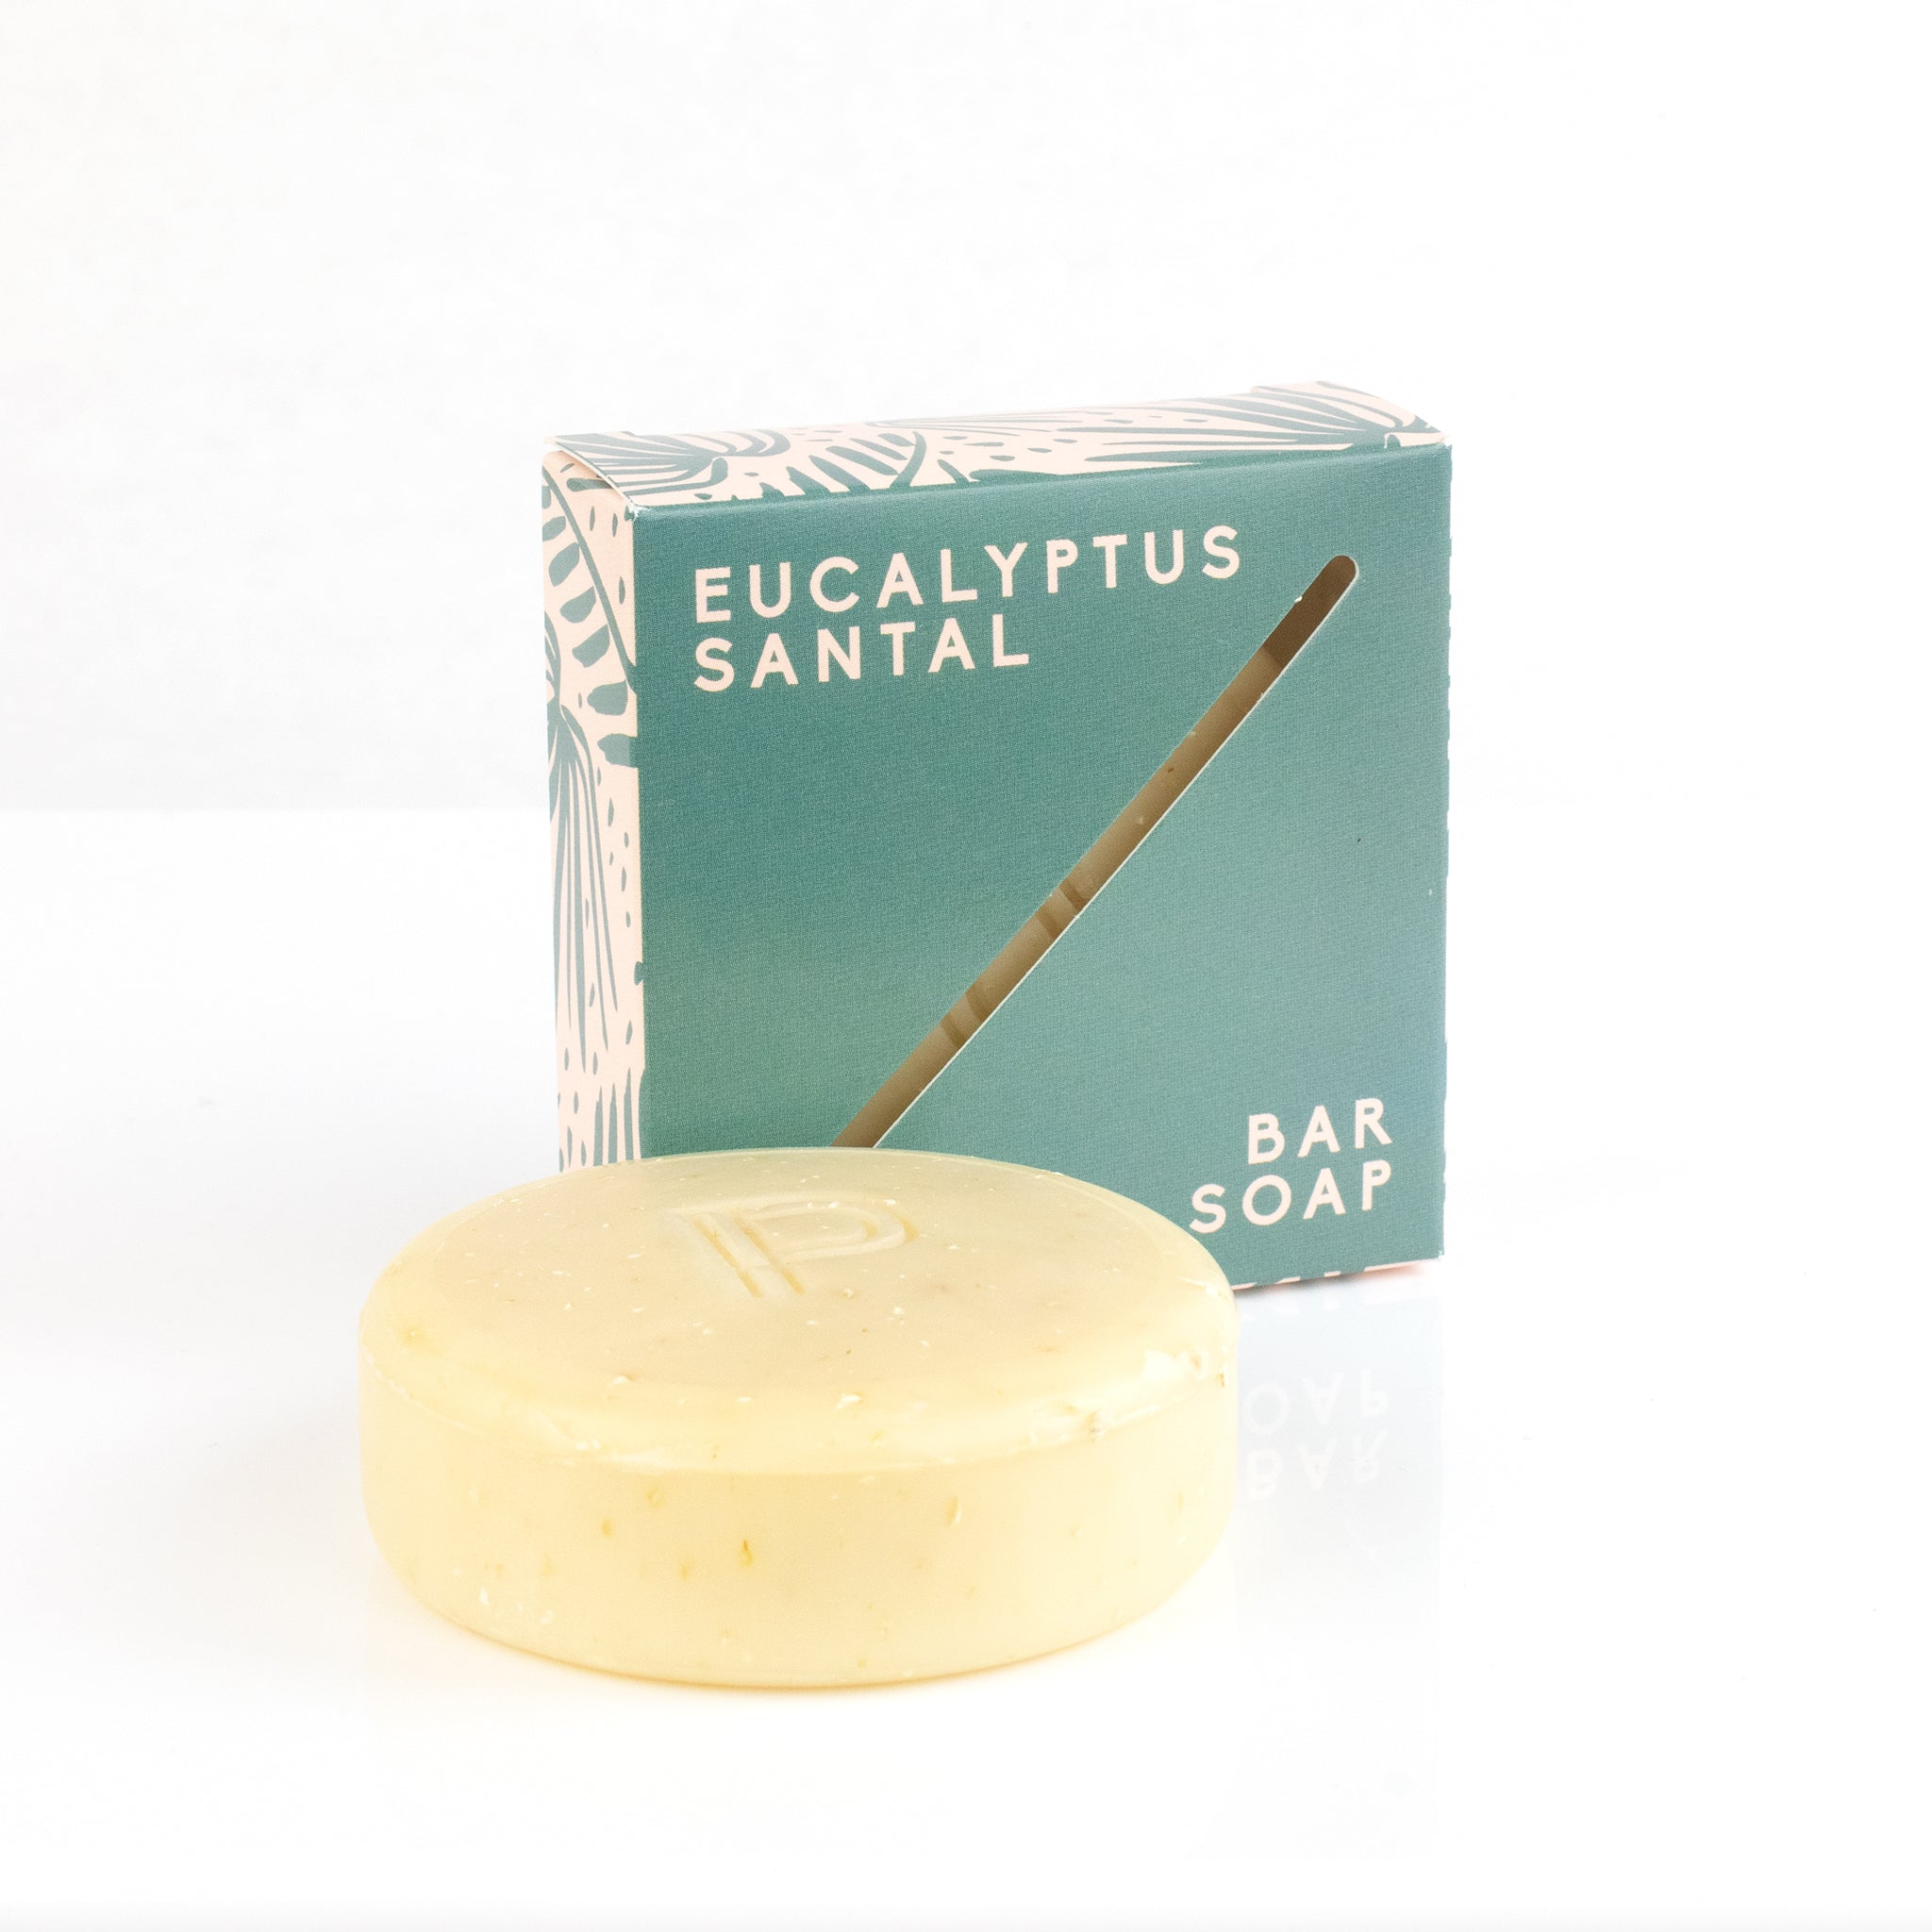 Eucalyptus Santal Soap